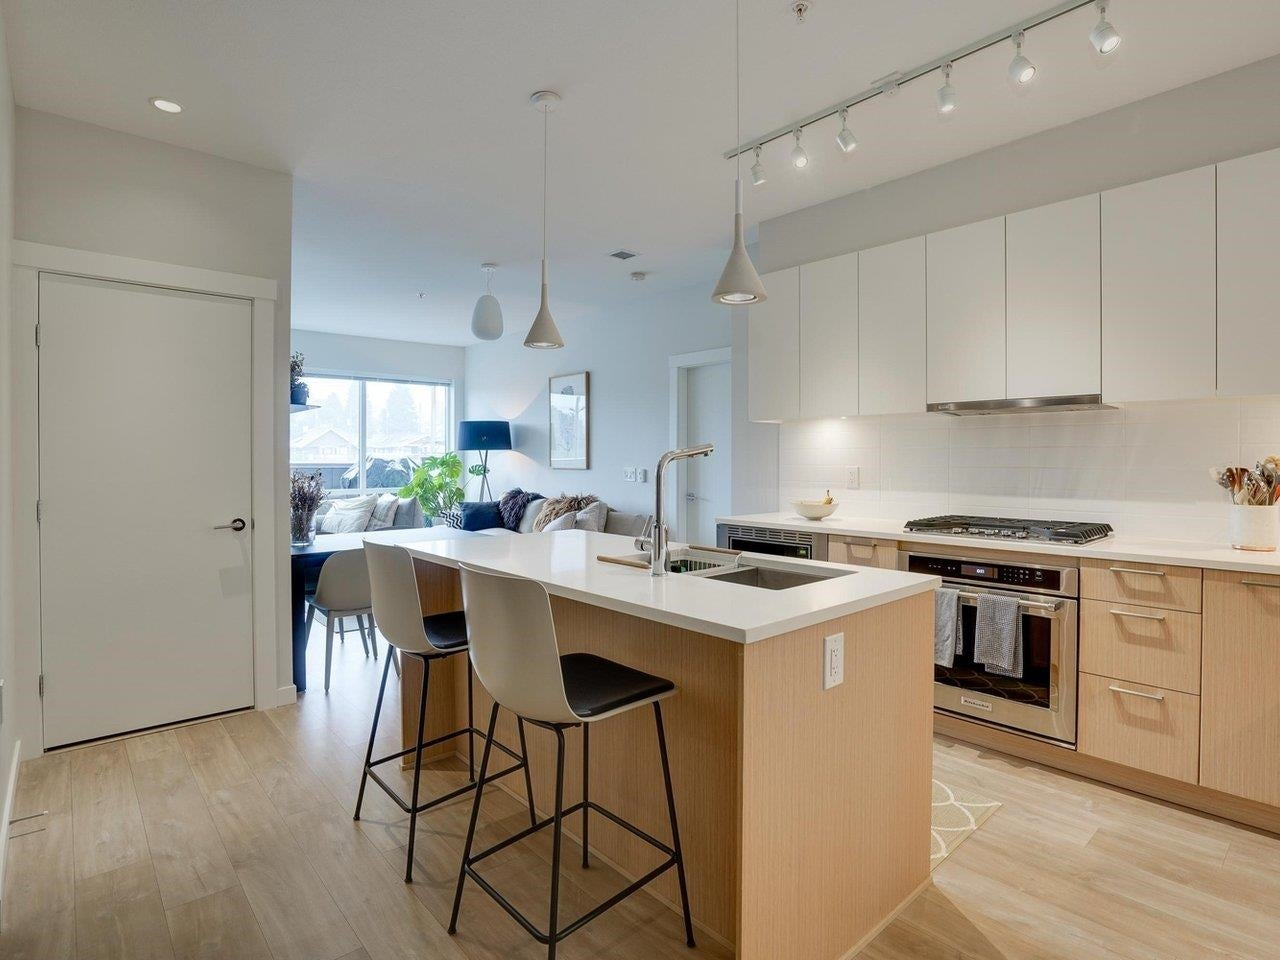 409 615 E 3RD STREET - Lower Lonsdale Apartment/Condo for sale, 2 Bedrooms (R2621616) - #2